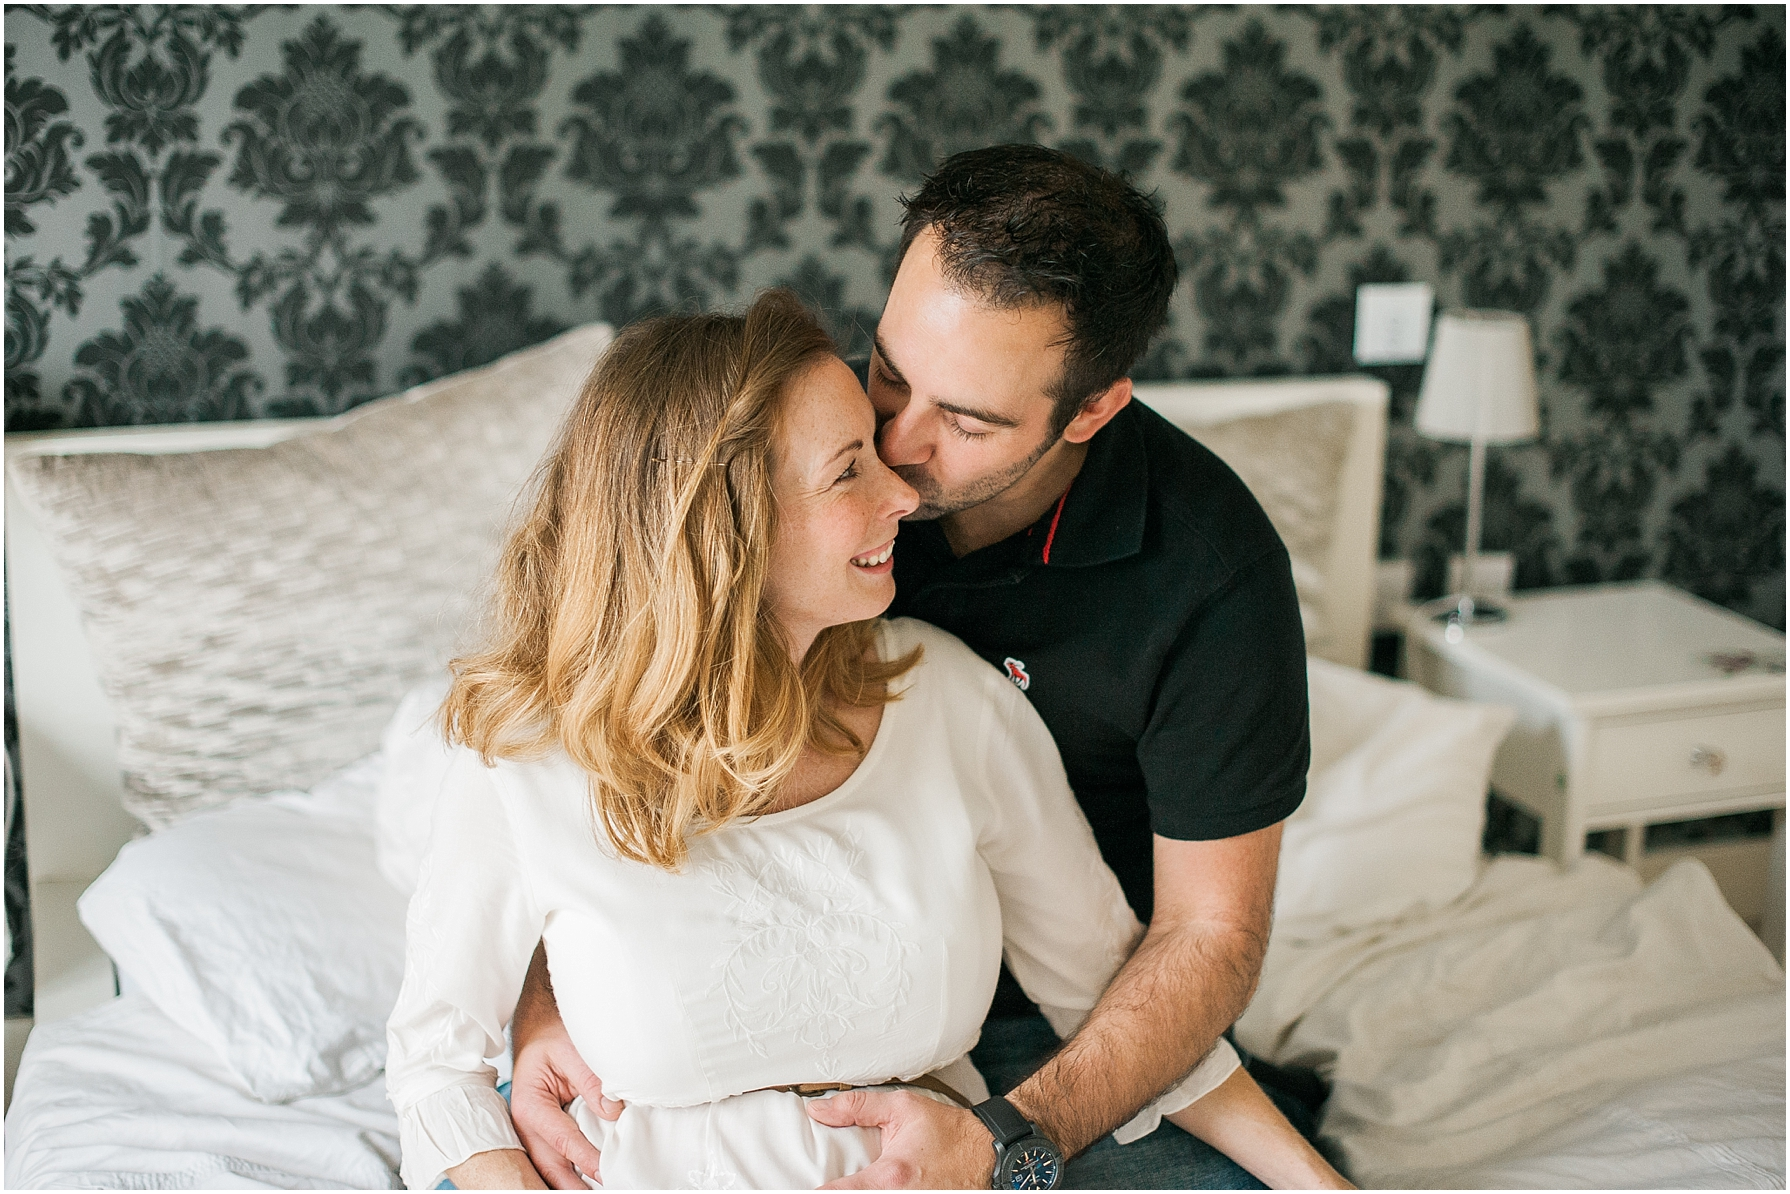 an indoor maternity photo shoot